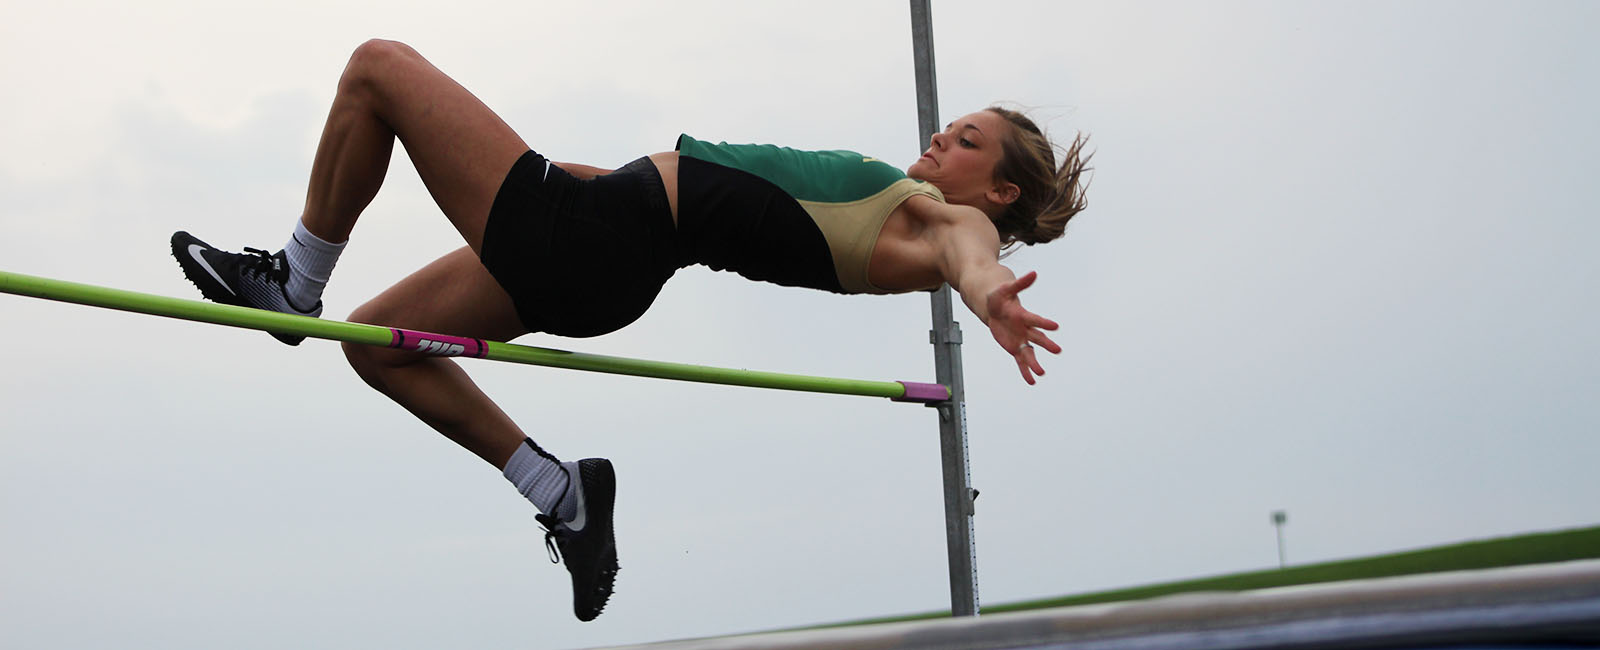 girl high jumping